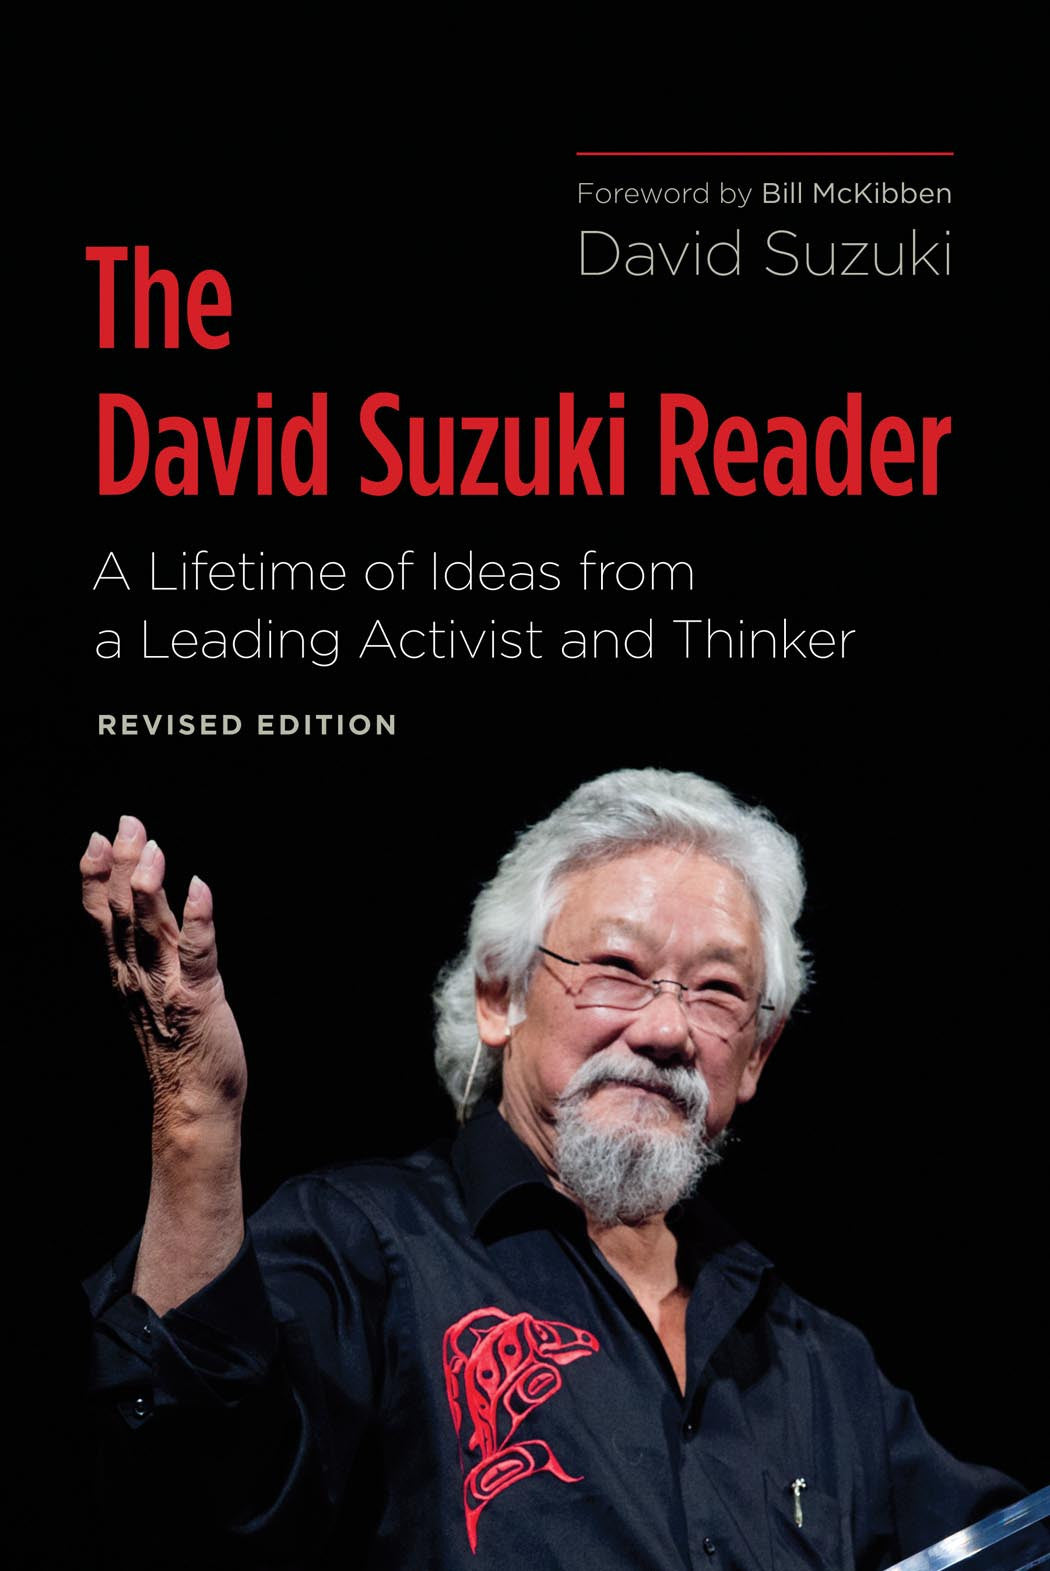 The David Suzuki Reader, 2nd Edition